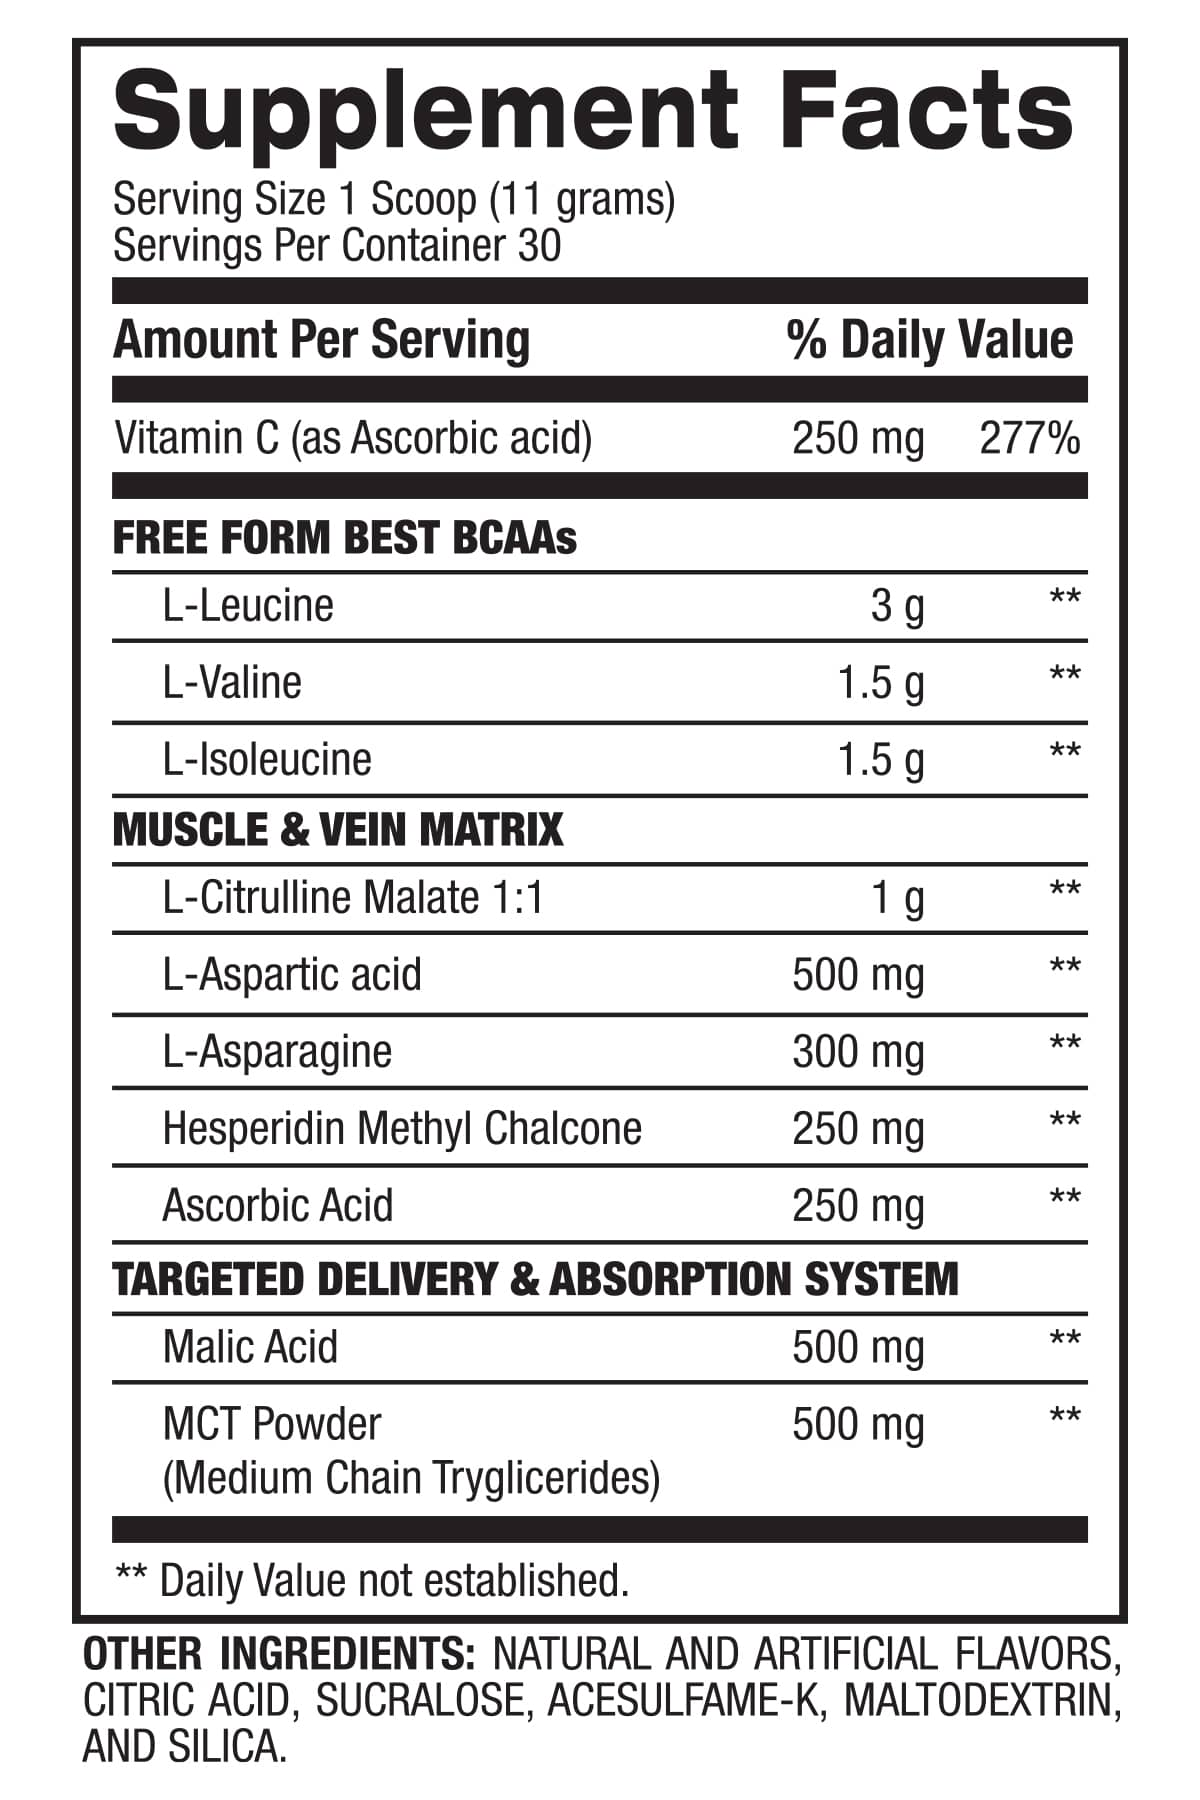 BETTER BEST BCAA - Muscle Building & Recovery (30 Servings) Supplement Facts